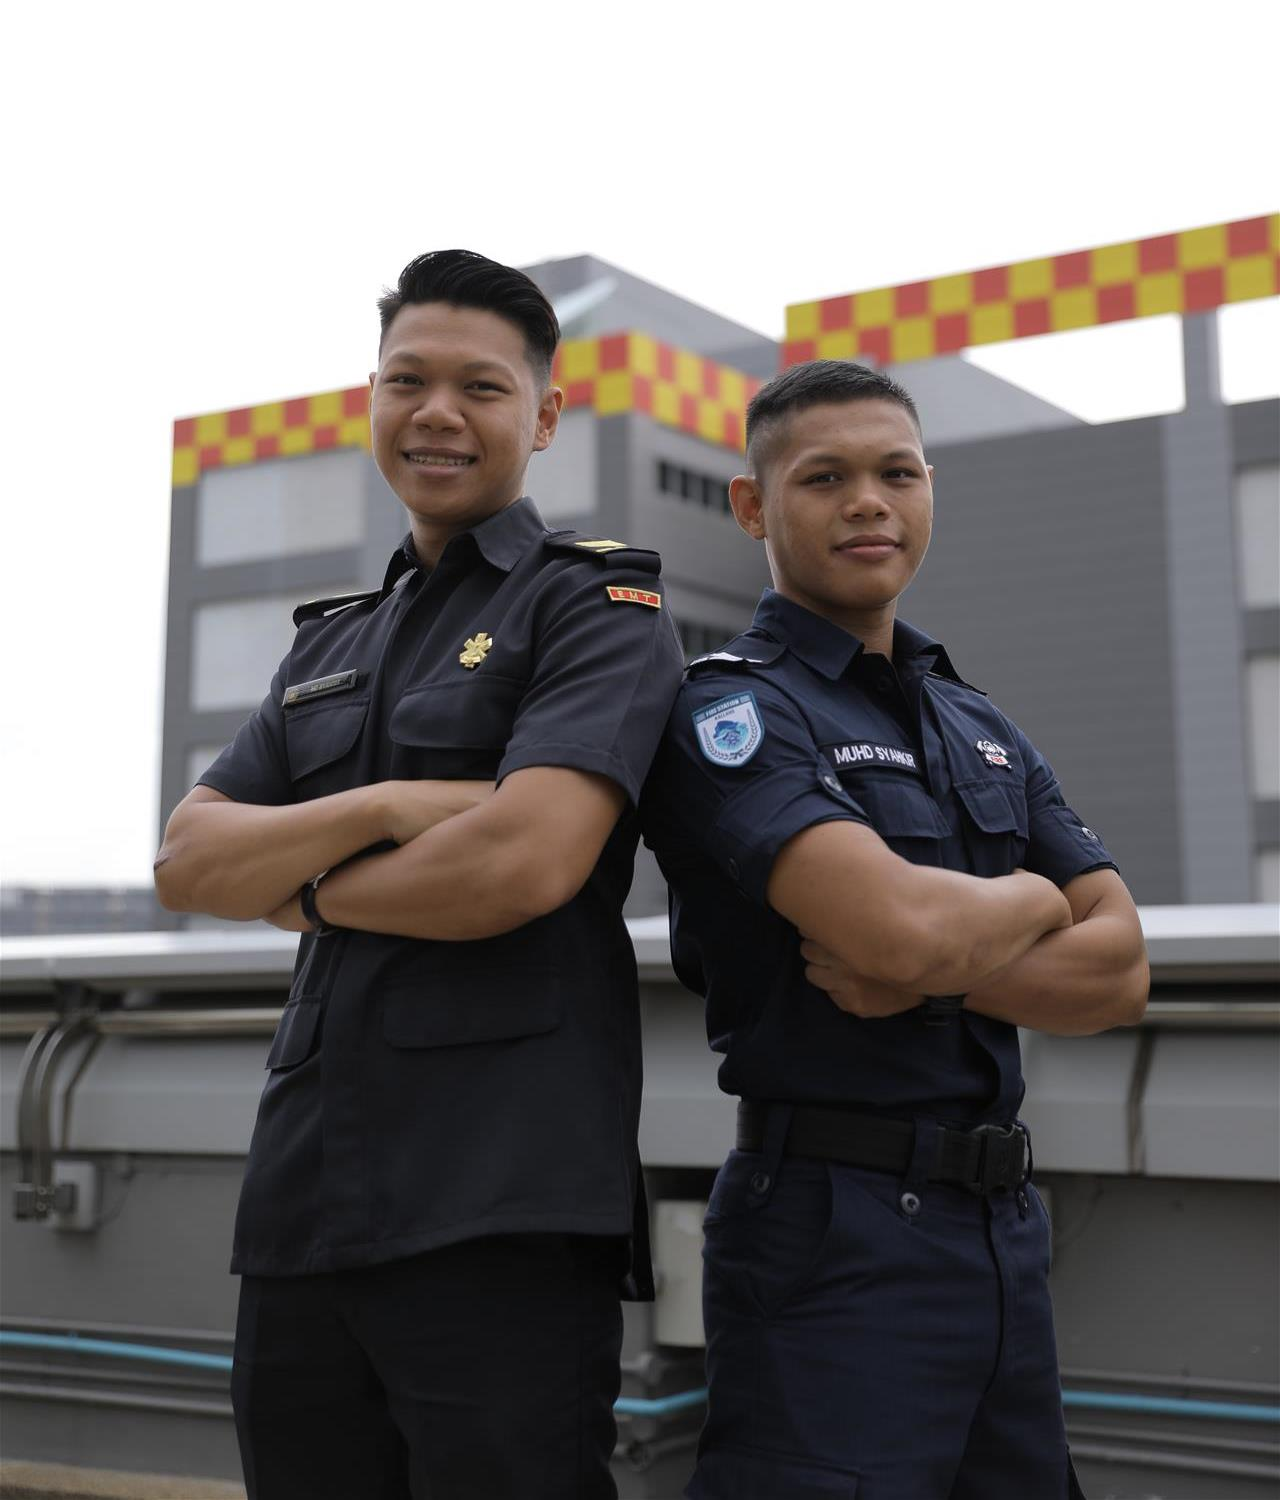 SGT3 Syahrir (left) is an Emergency Medical Technician section commander from Yishun Fire Station while SGT2 Syahkir (right) is a Fire & Rescue Specialist from Kallang Fire Station.